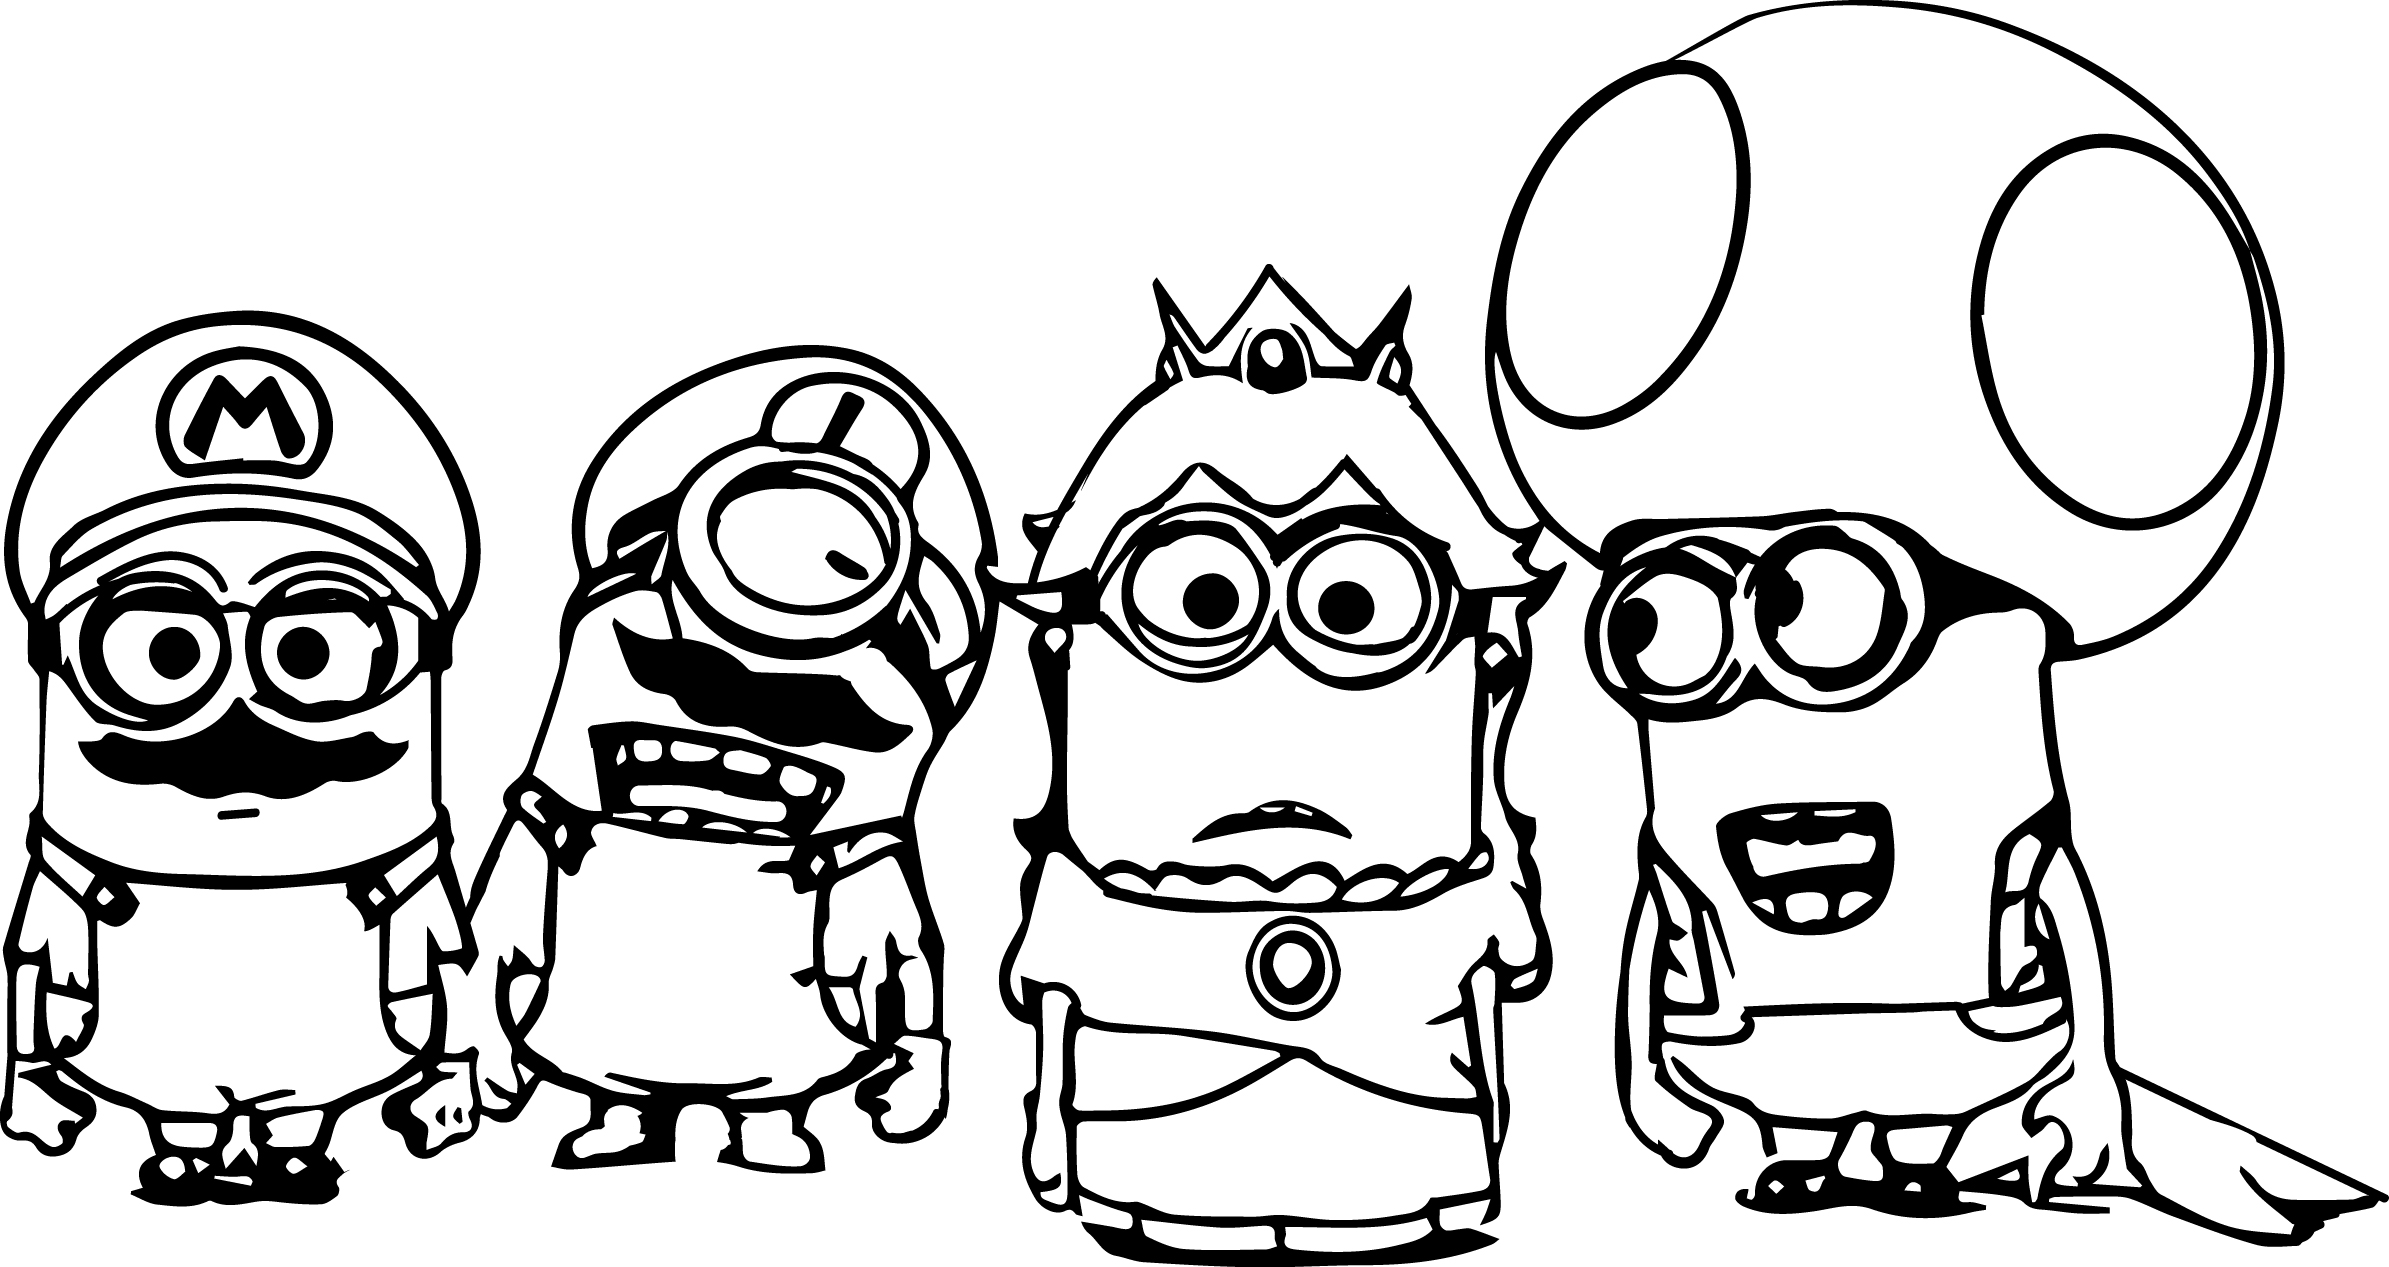 minion coloring pages pdf coloring pages   Barca.fontanacountryinn.com minion coloring pages pdf